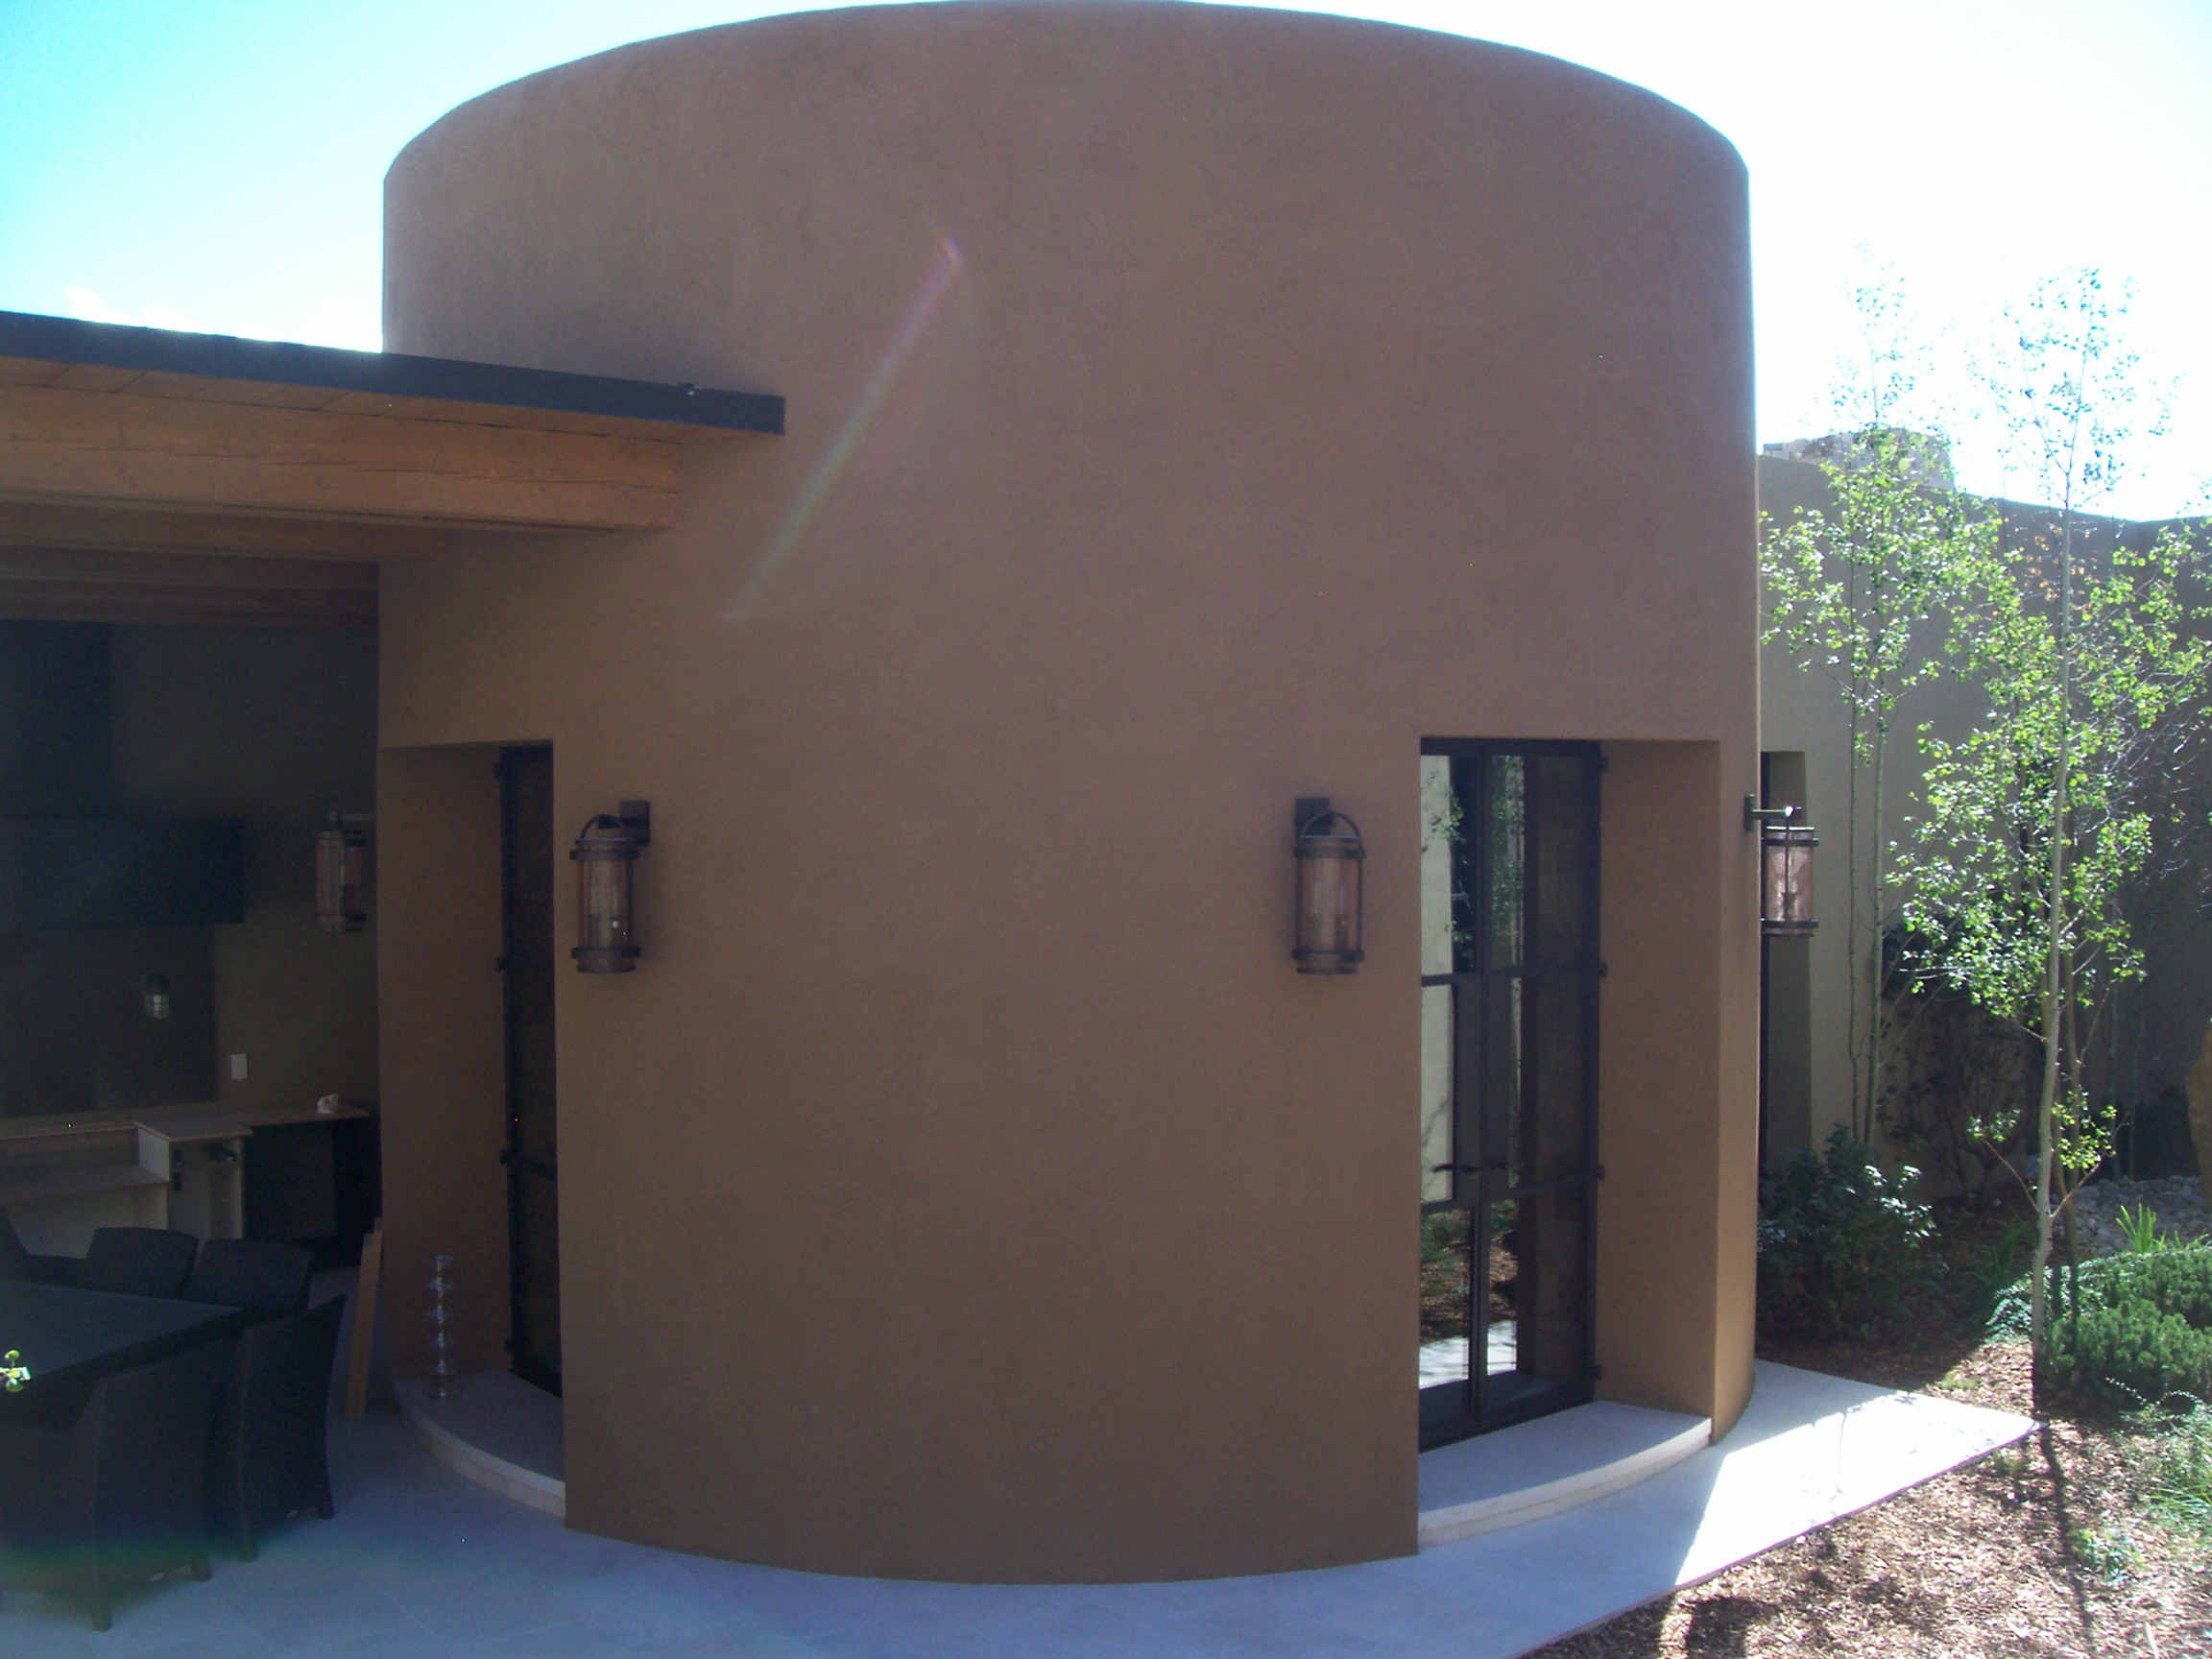 circular entrance with stucco exterior